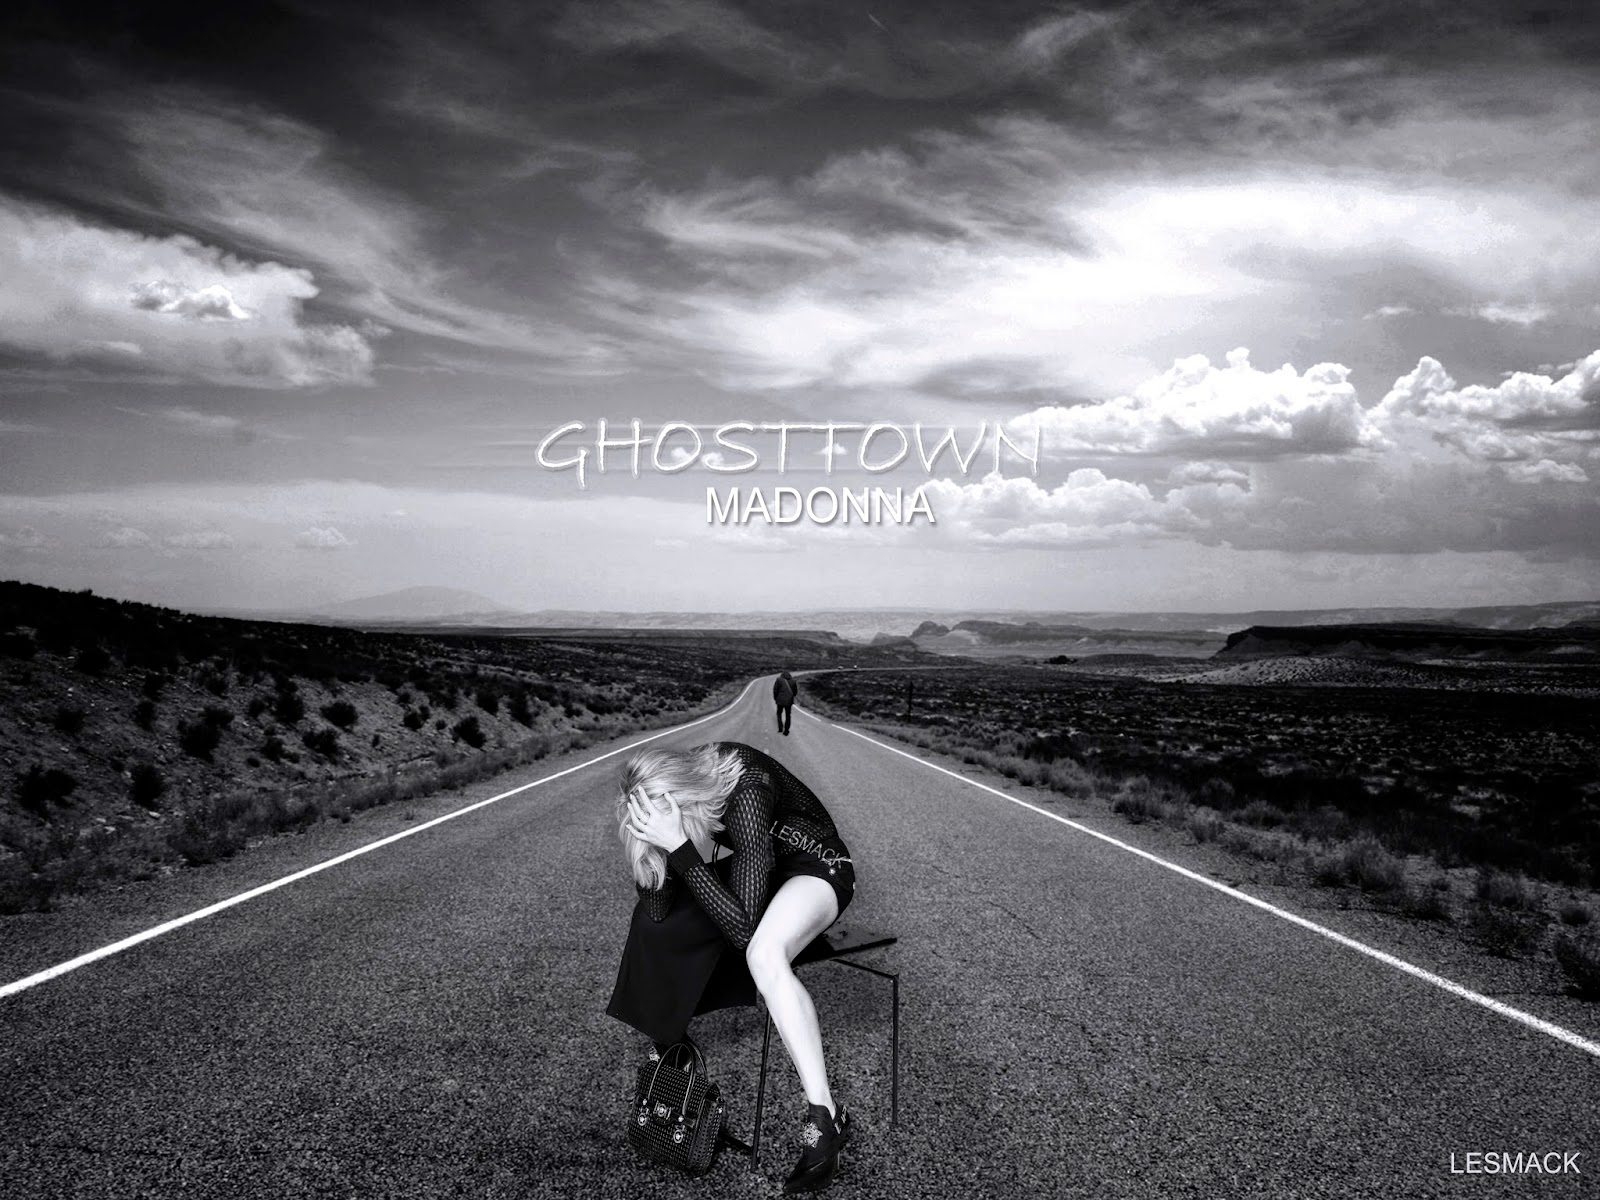 madonna fanmade covers: ghosttown - wallpaper